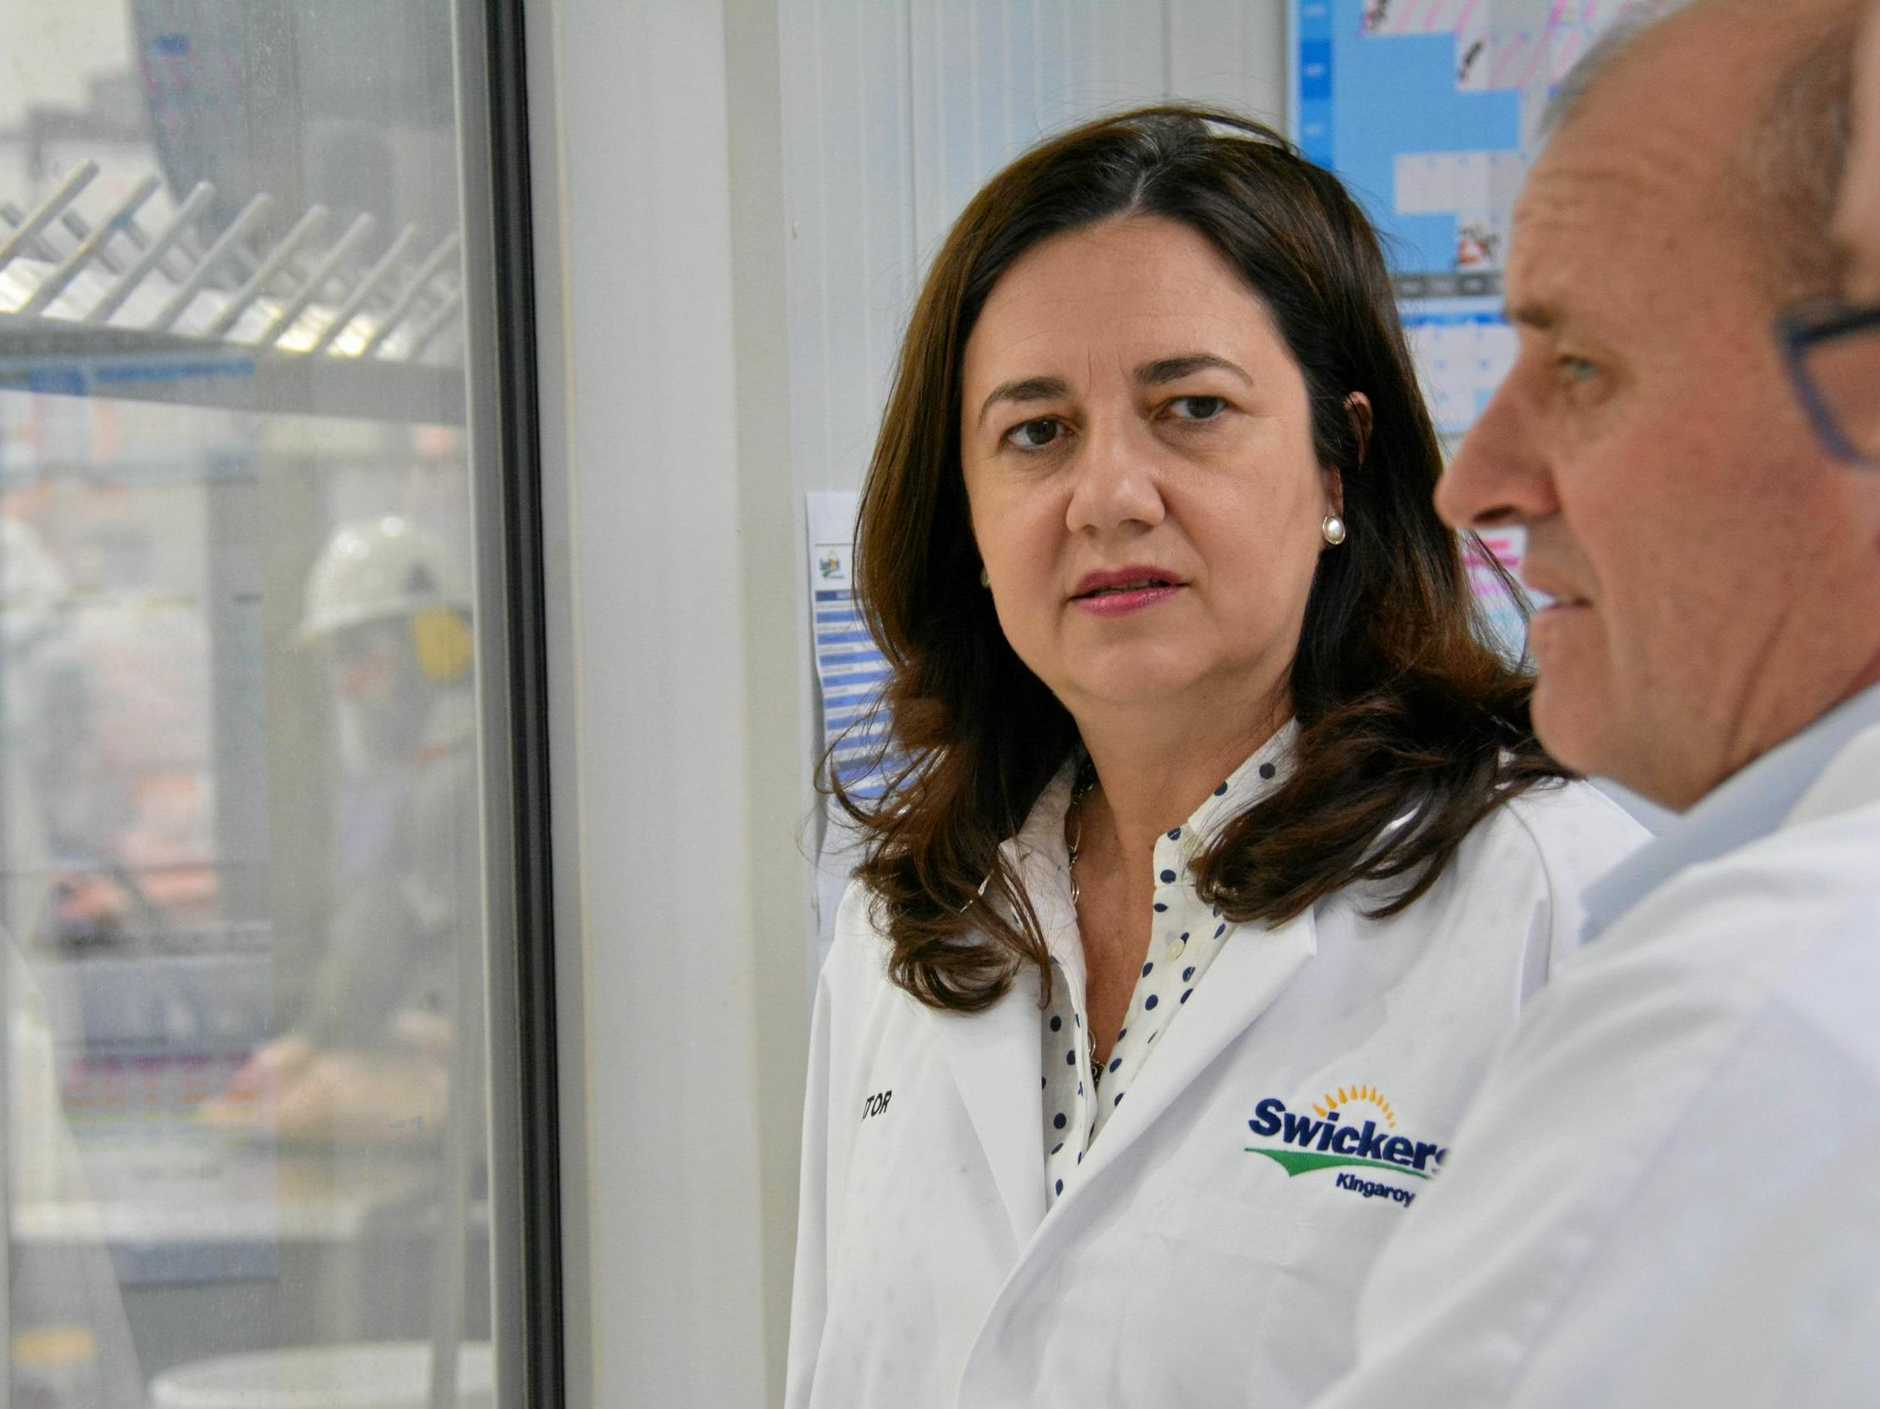 Premier Annastacia Palaszczuk and General Manager of Operations at Swickers Linchon Hawks inspect the temporary boning room at Swickers Bacon Factory Kingaroy, September 18, 2017